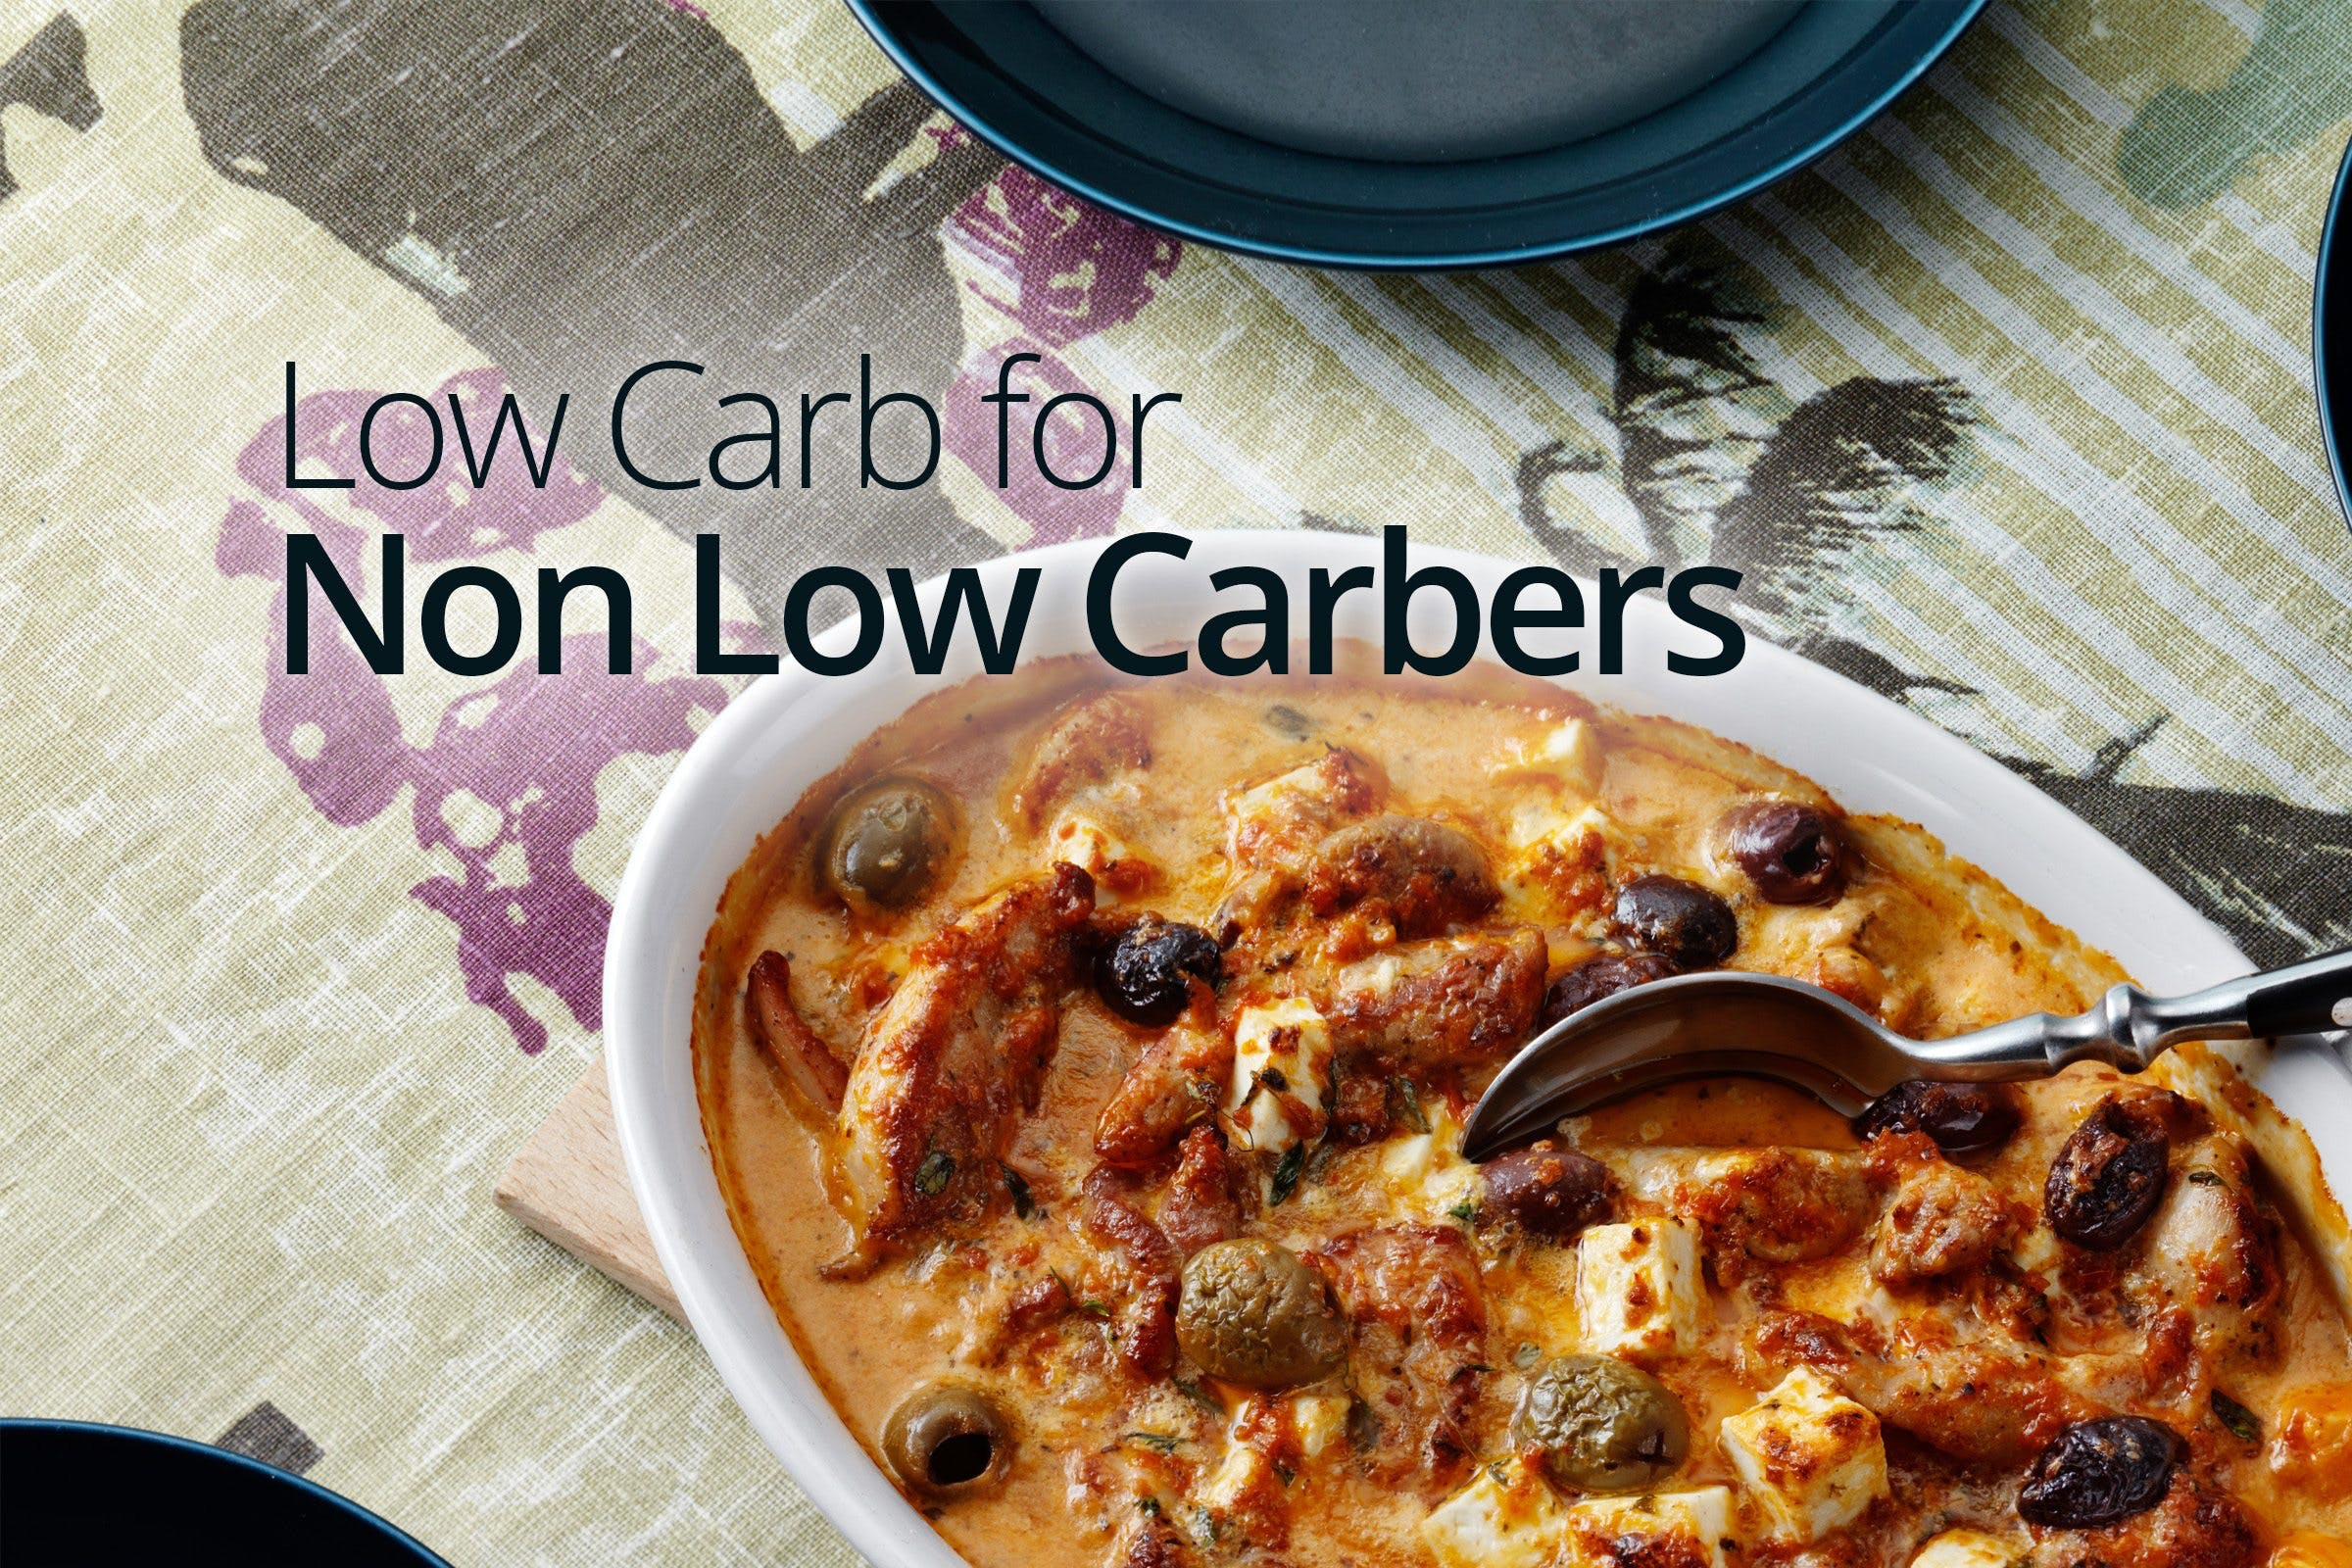 Cooking Low Carb for Non Low Carbers